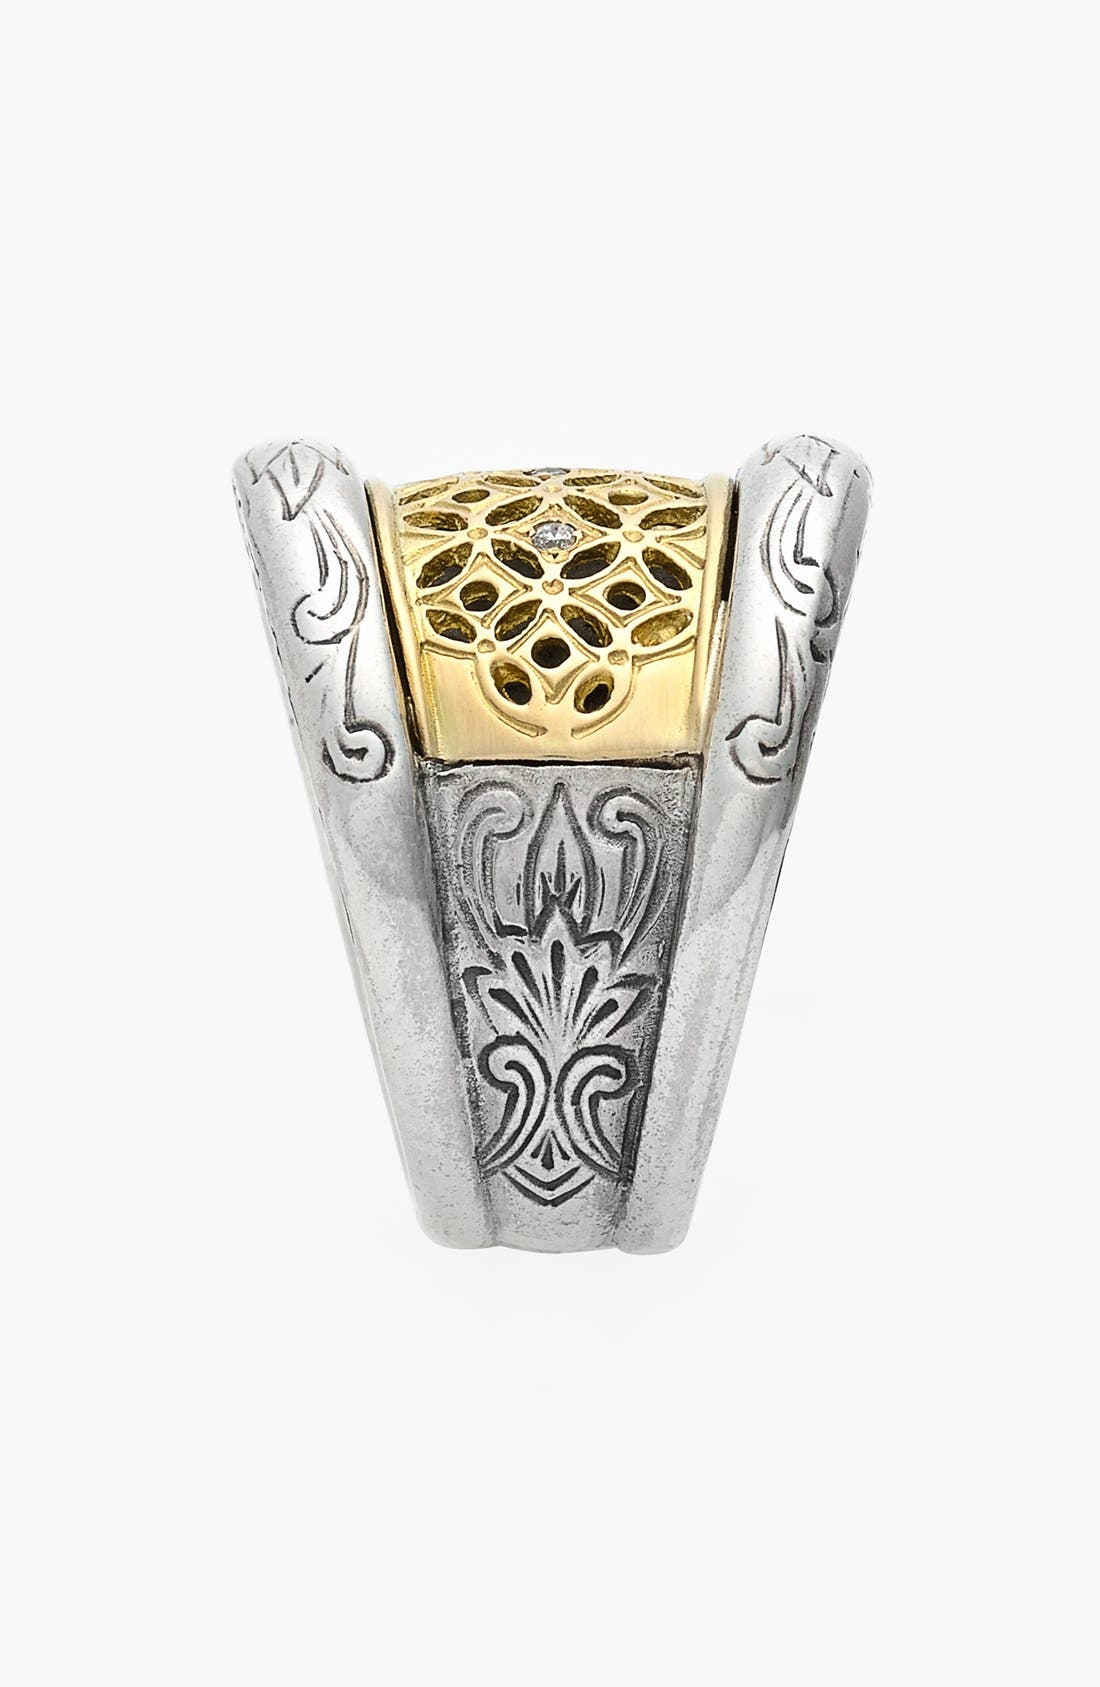 'Diamond Classics' Diamond Filigree Ring,                             Alternate thumbnail 2, color,                             040